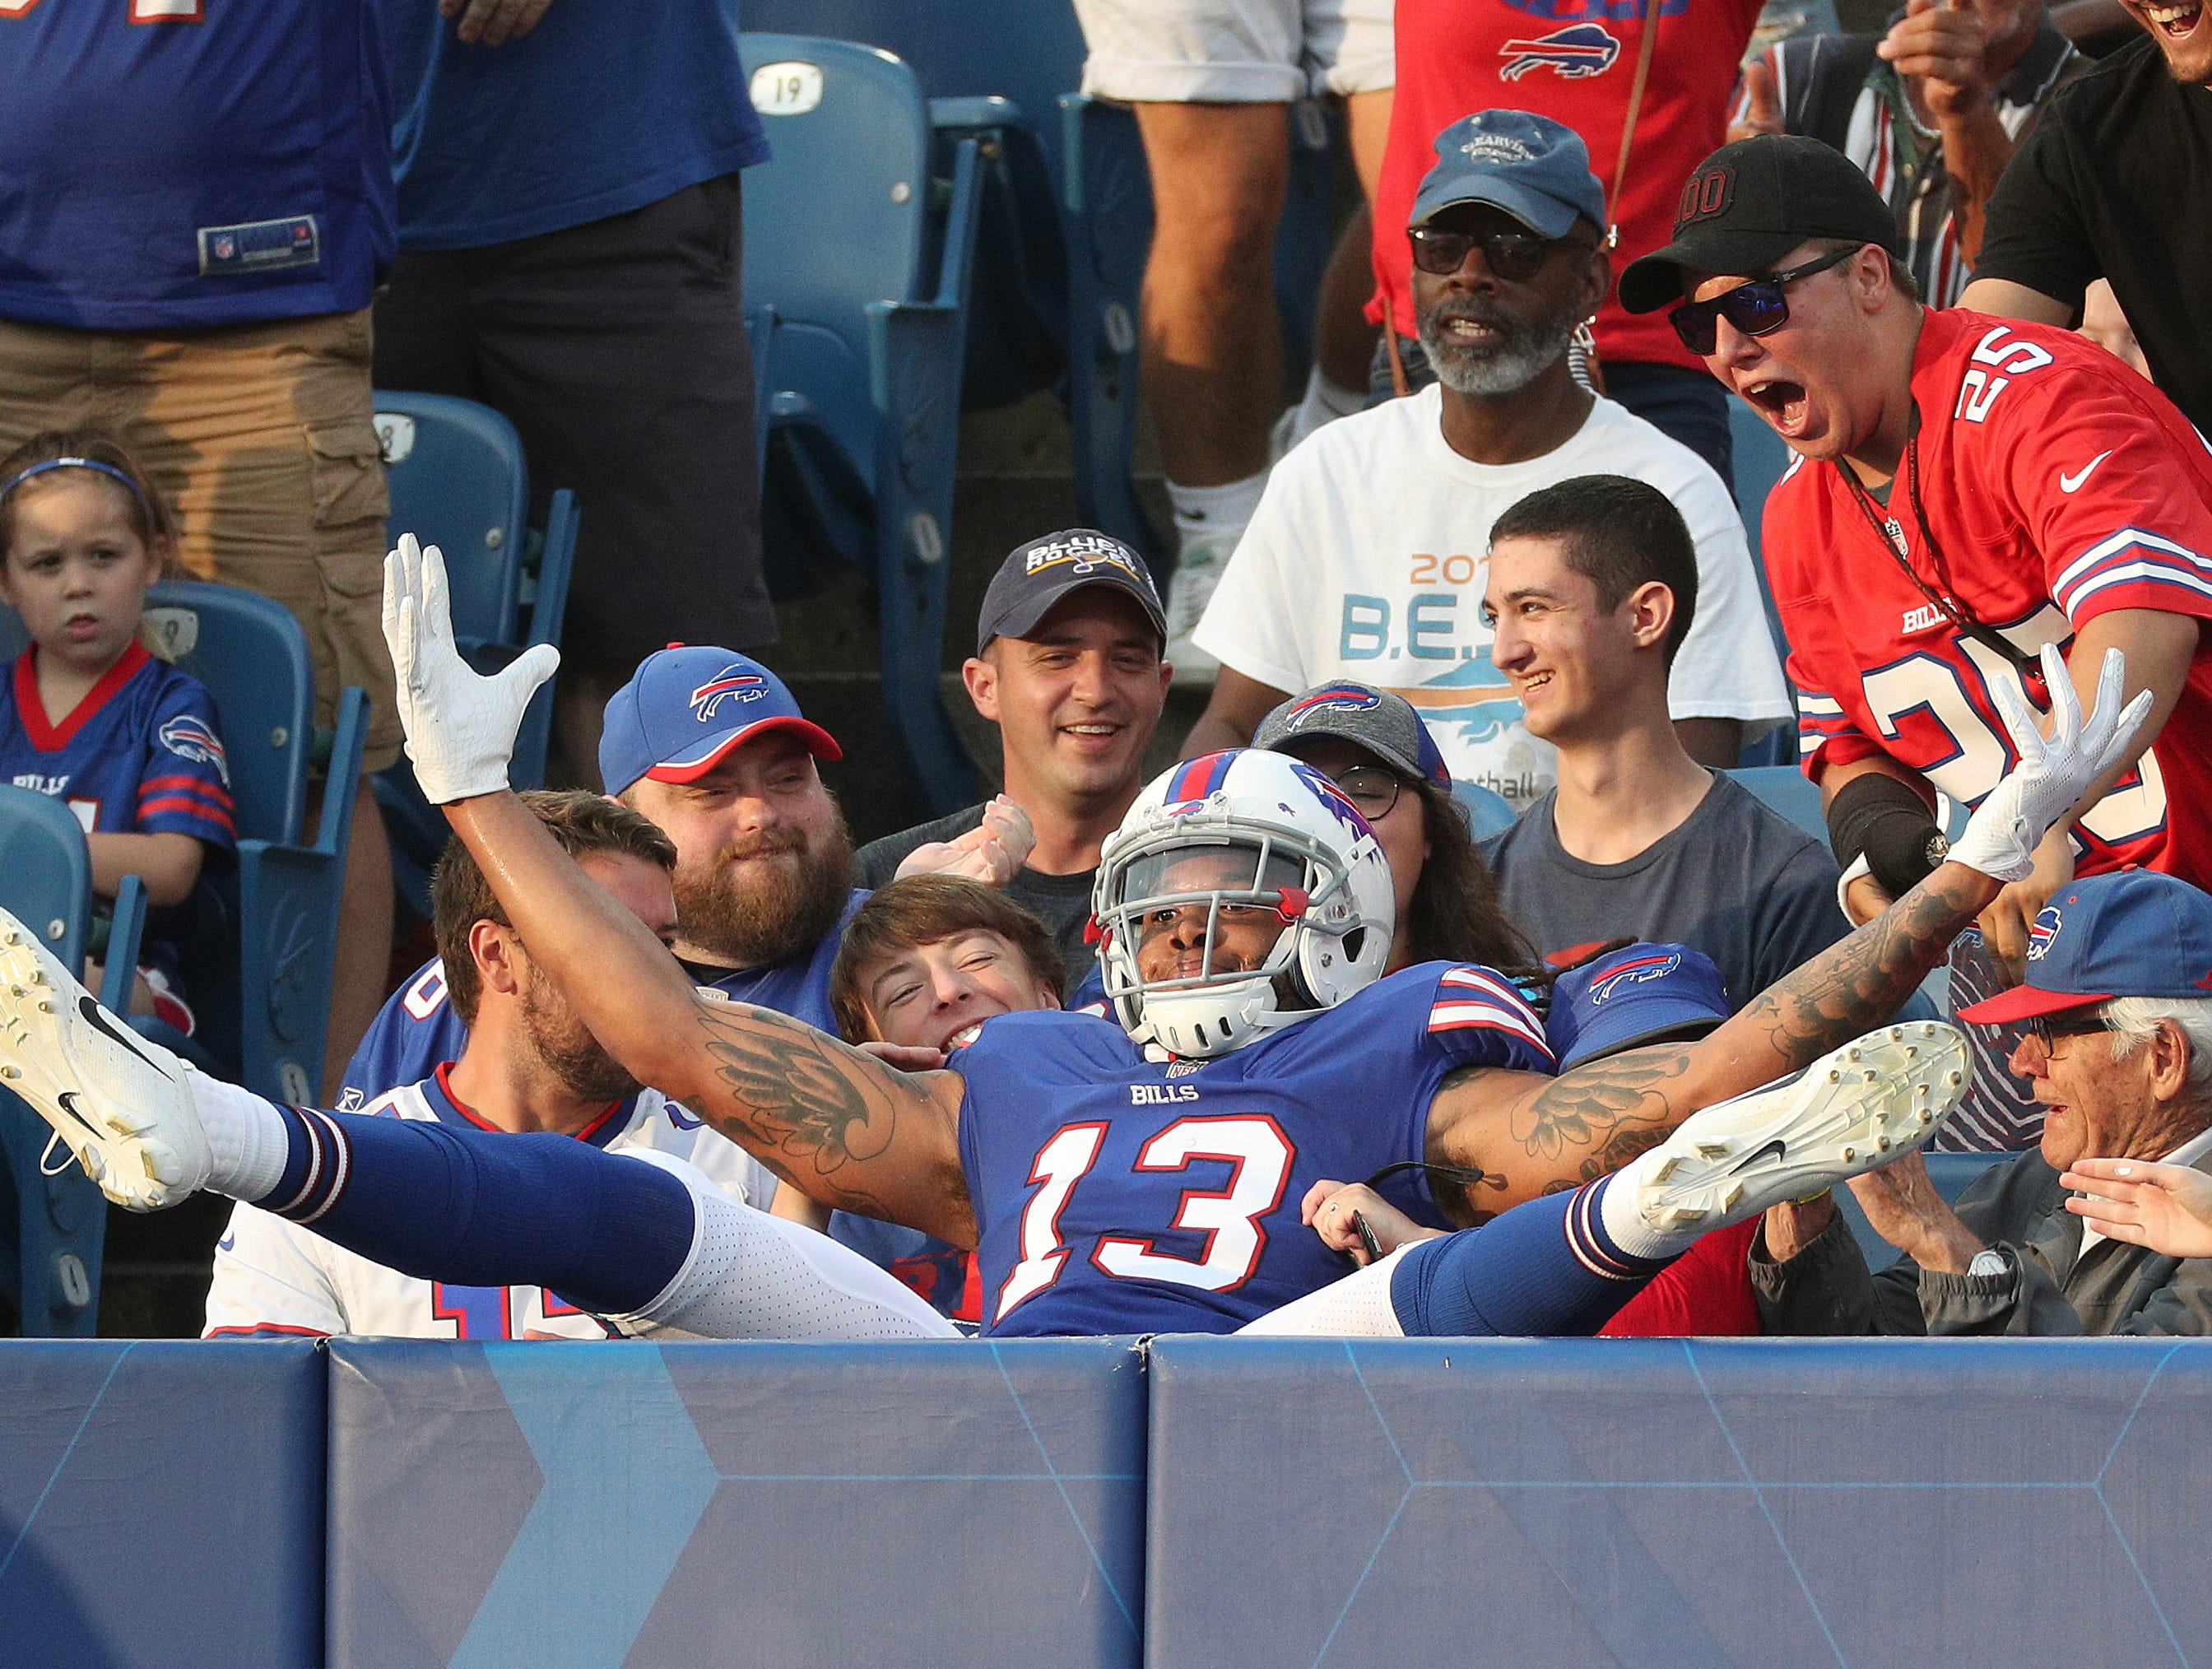 Bills receiver Kelvin Benjamin ends up in the stands after his 28 yard touchdown catch from Nathan Peterman against Carolina.